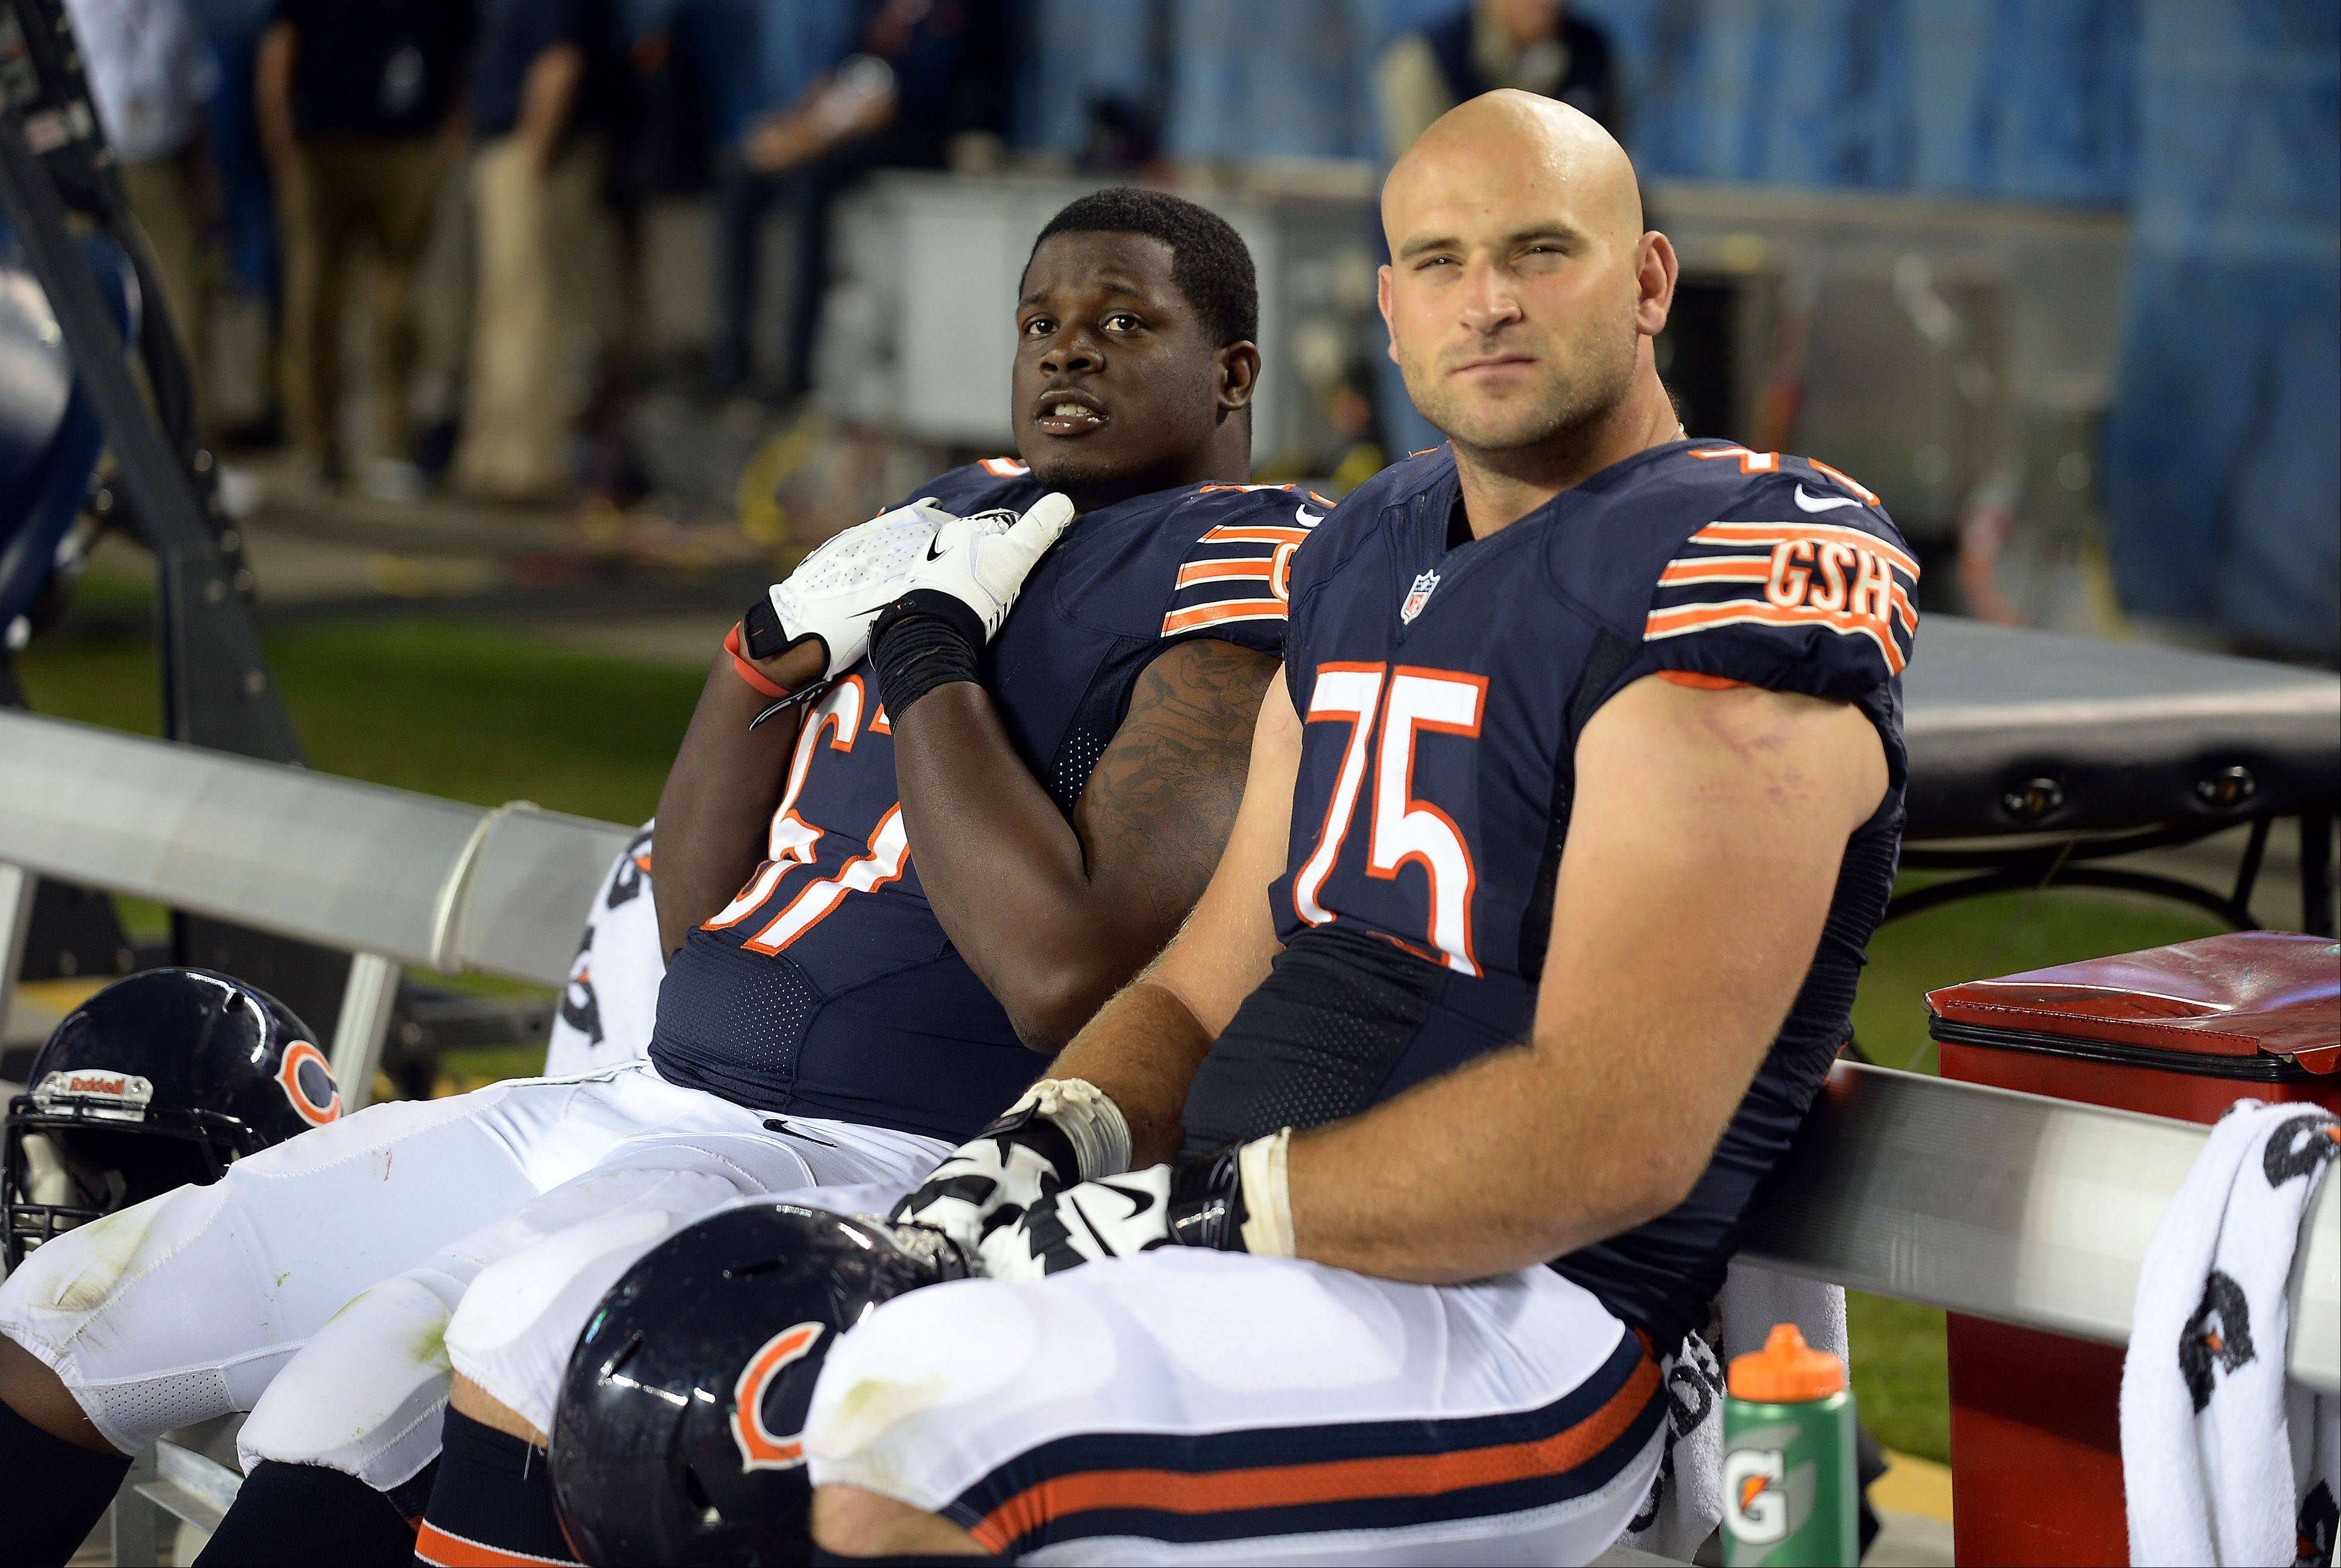 Rookie linemen impressing Bears coaches